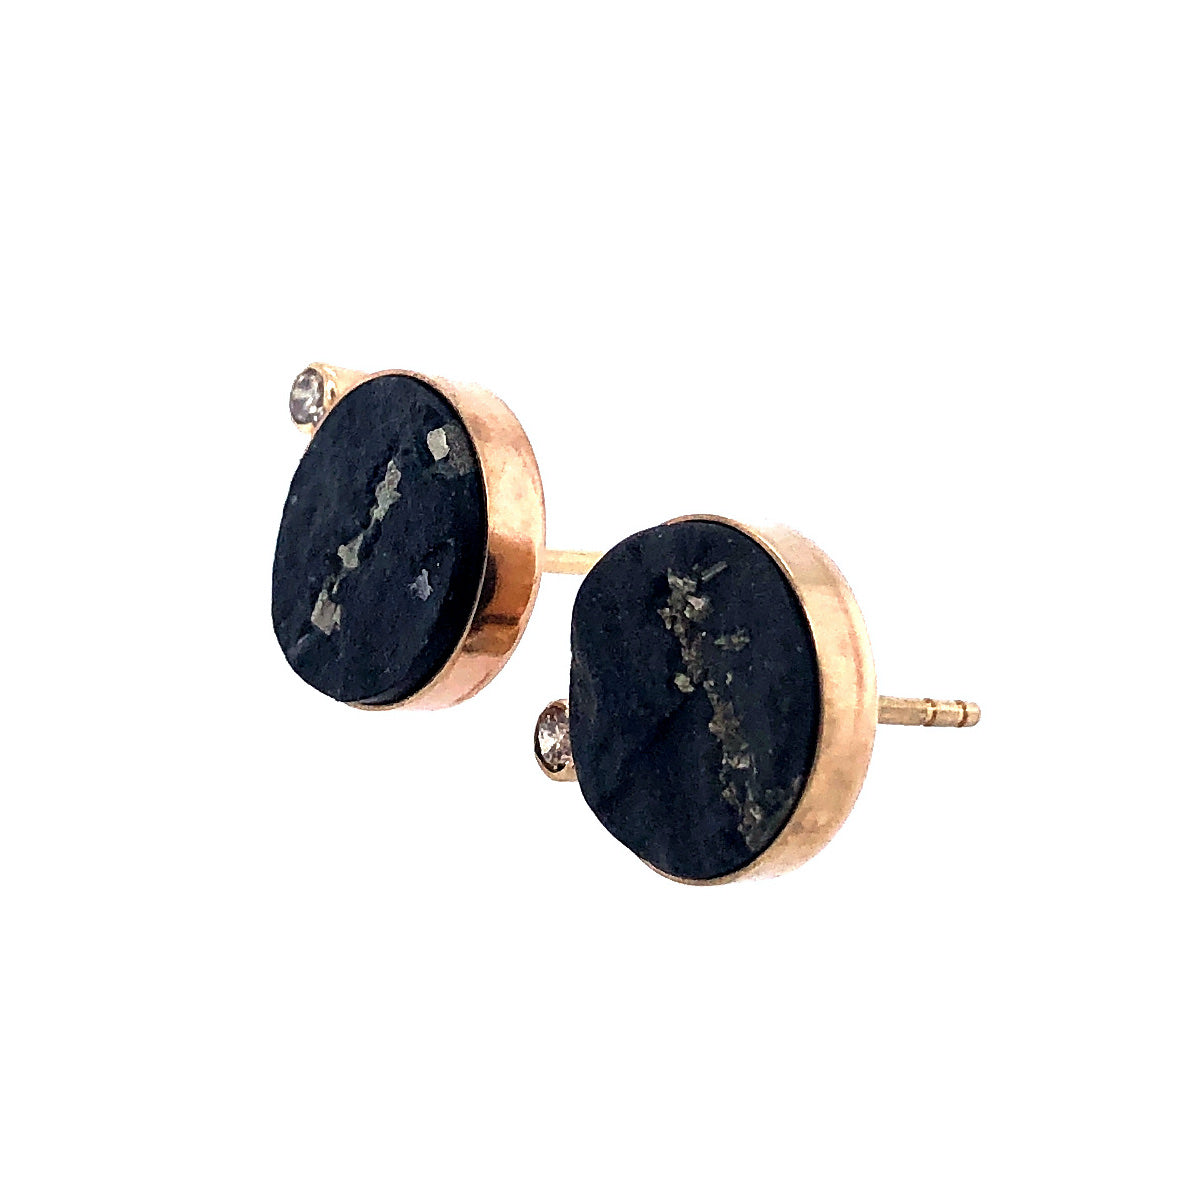 Pyrite and Diamond Stud Earrings, Handmade in 14k Gold